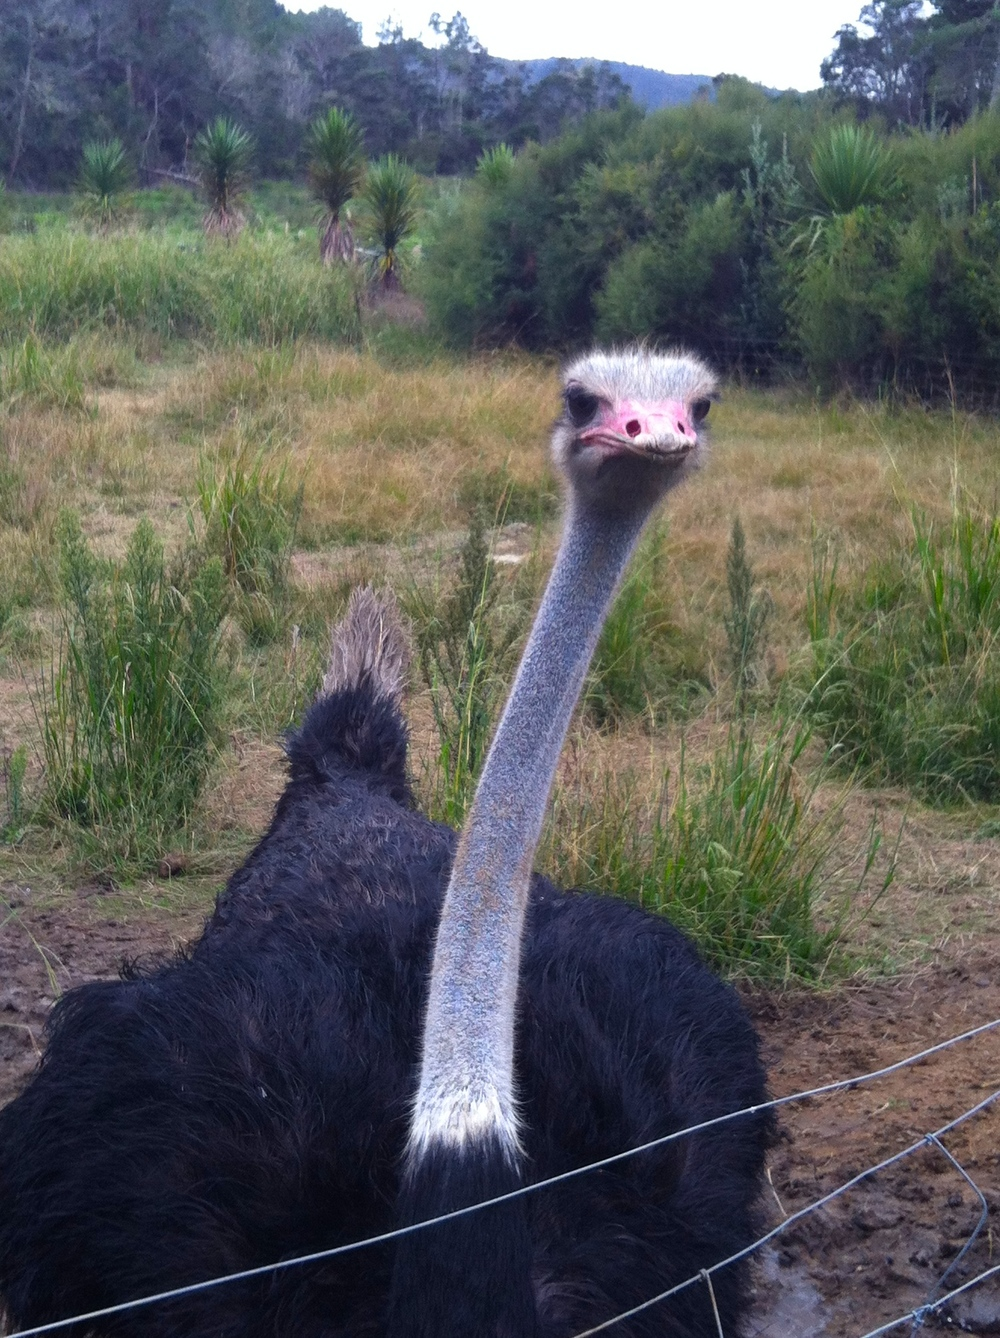 This ostrich was so intense! He got right up in our faces.